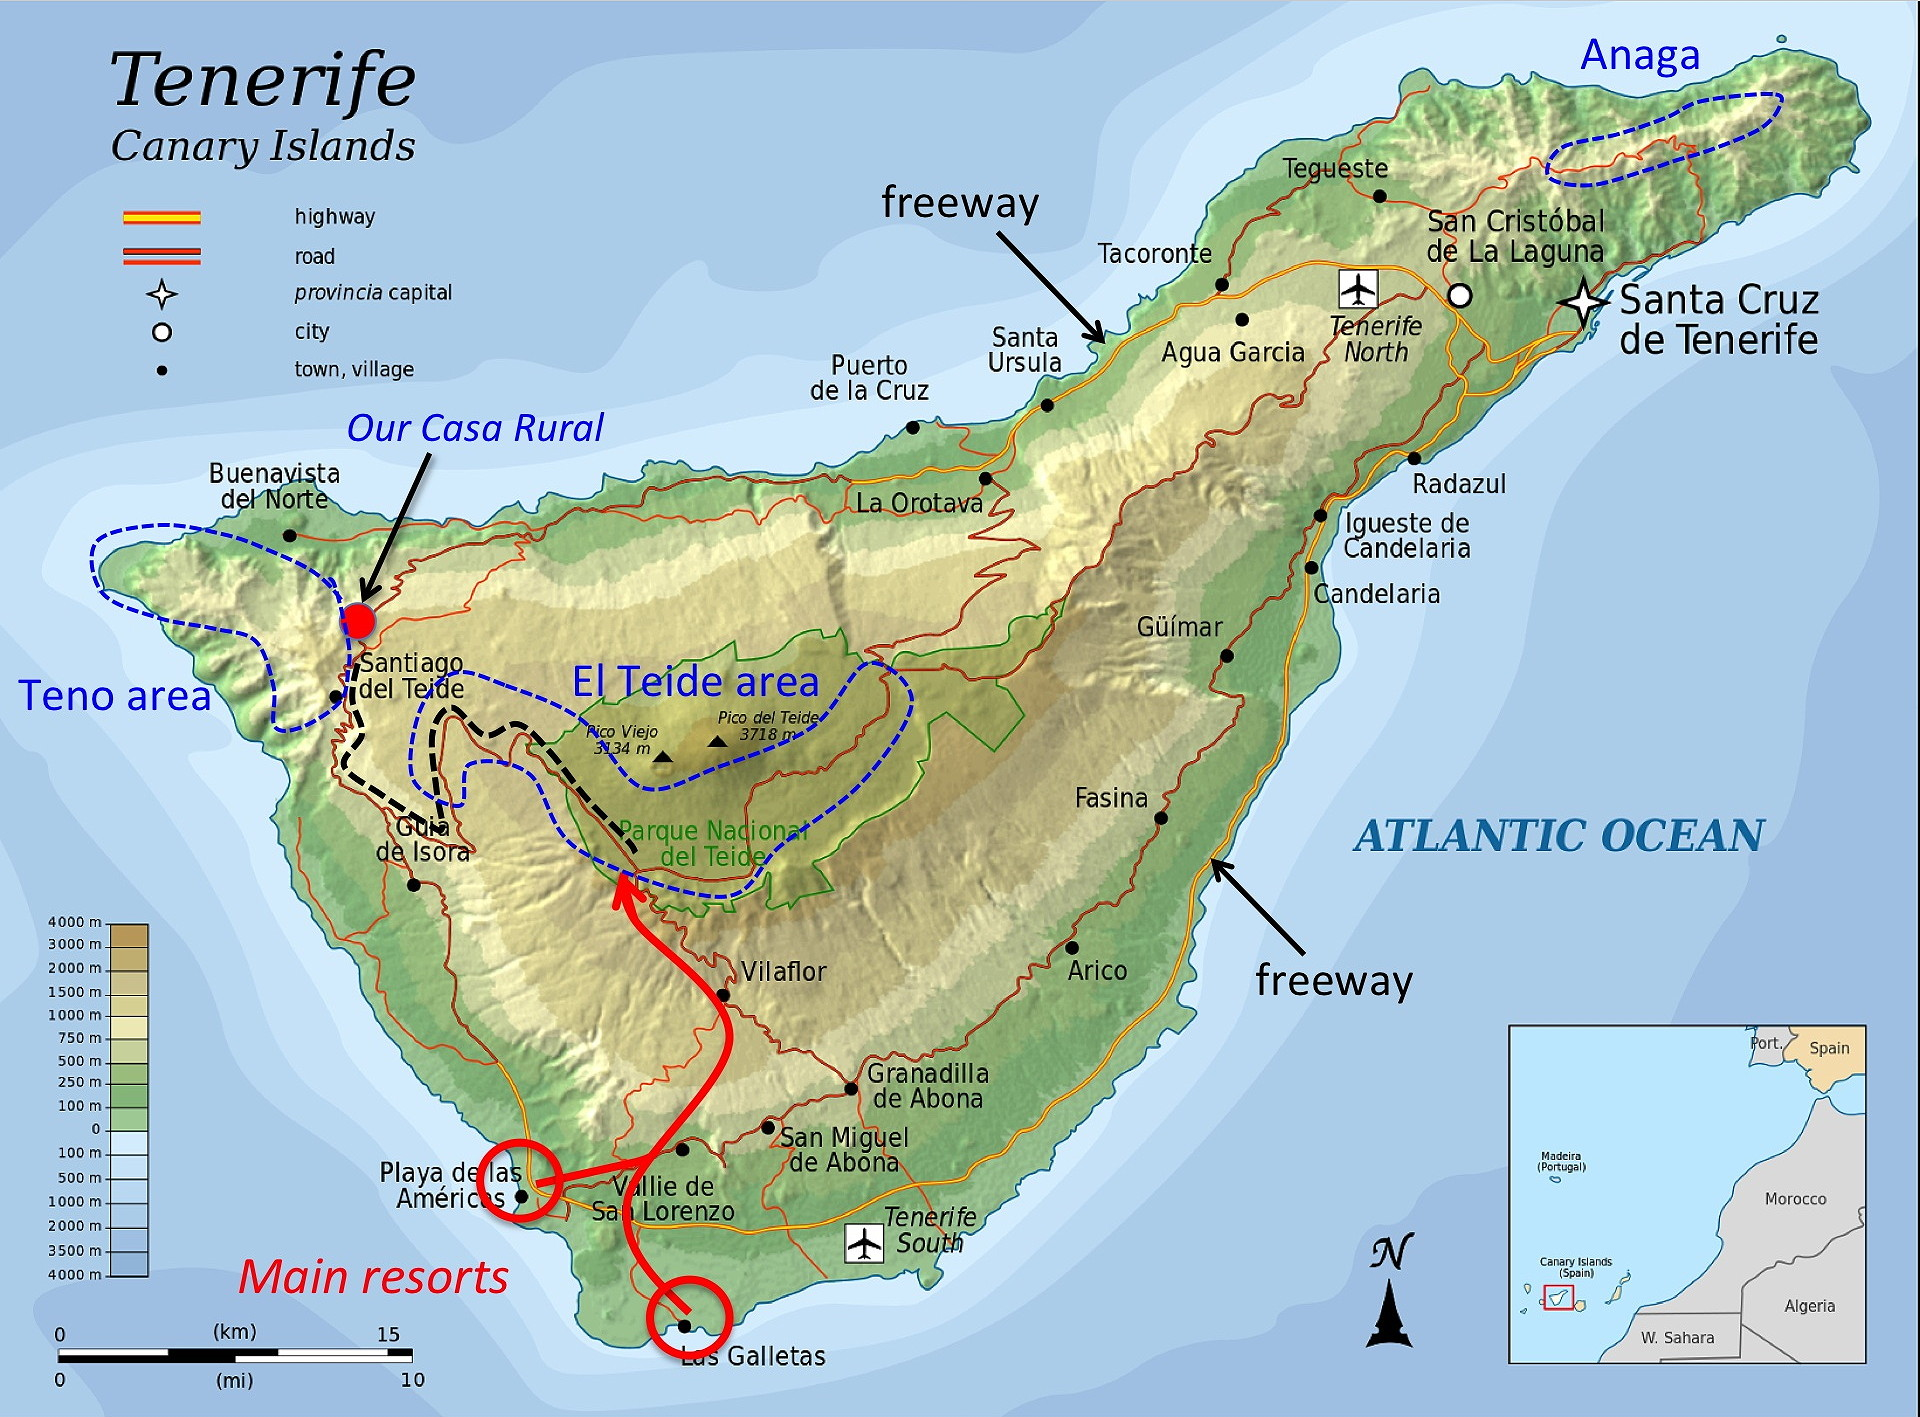 tenerife_example_traffic_90